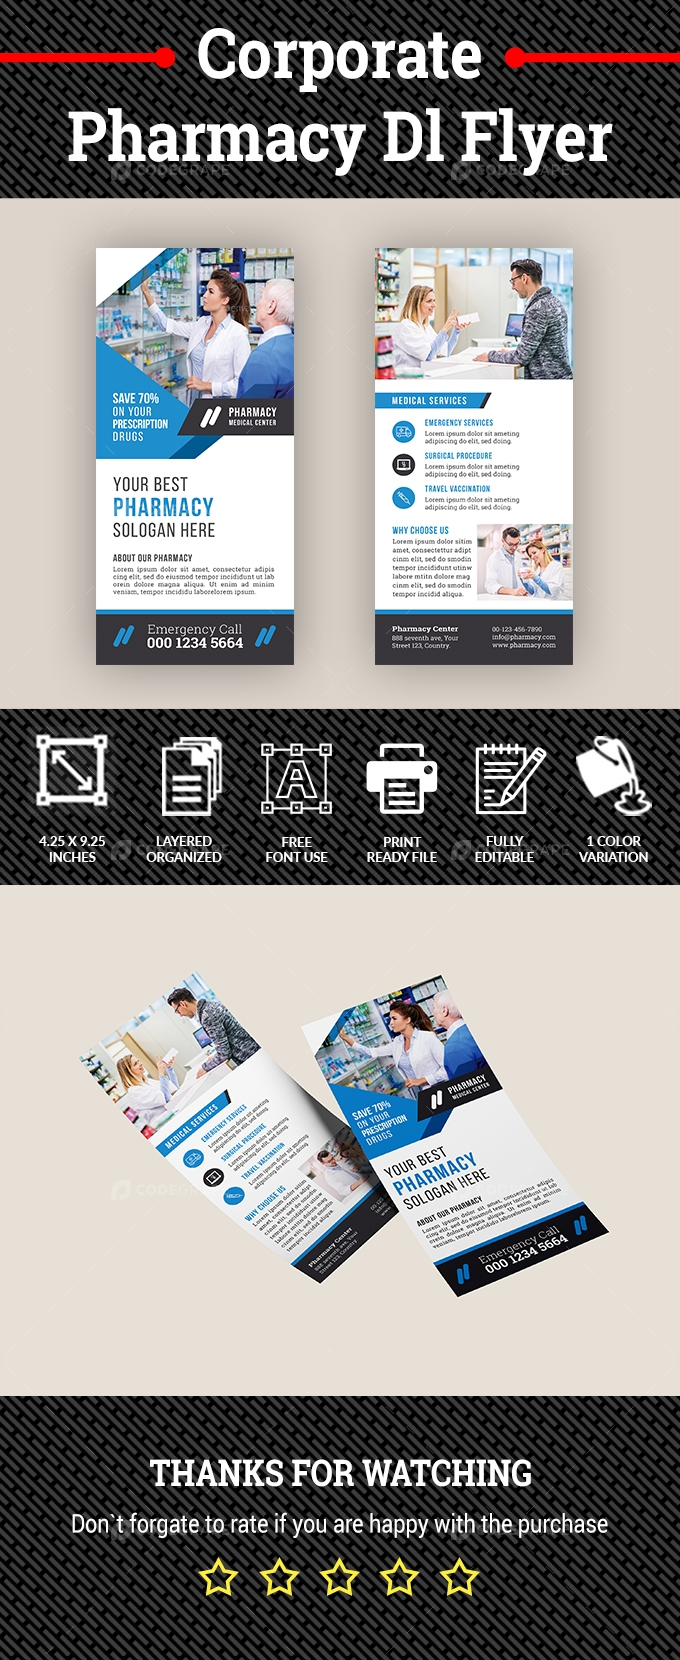 Pharmacy DL Flyer